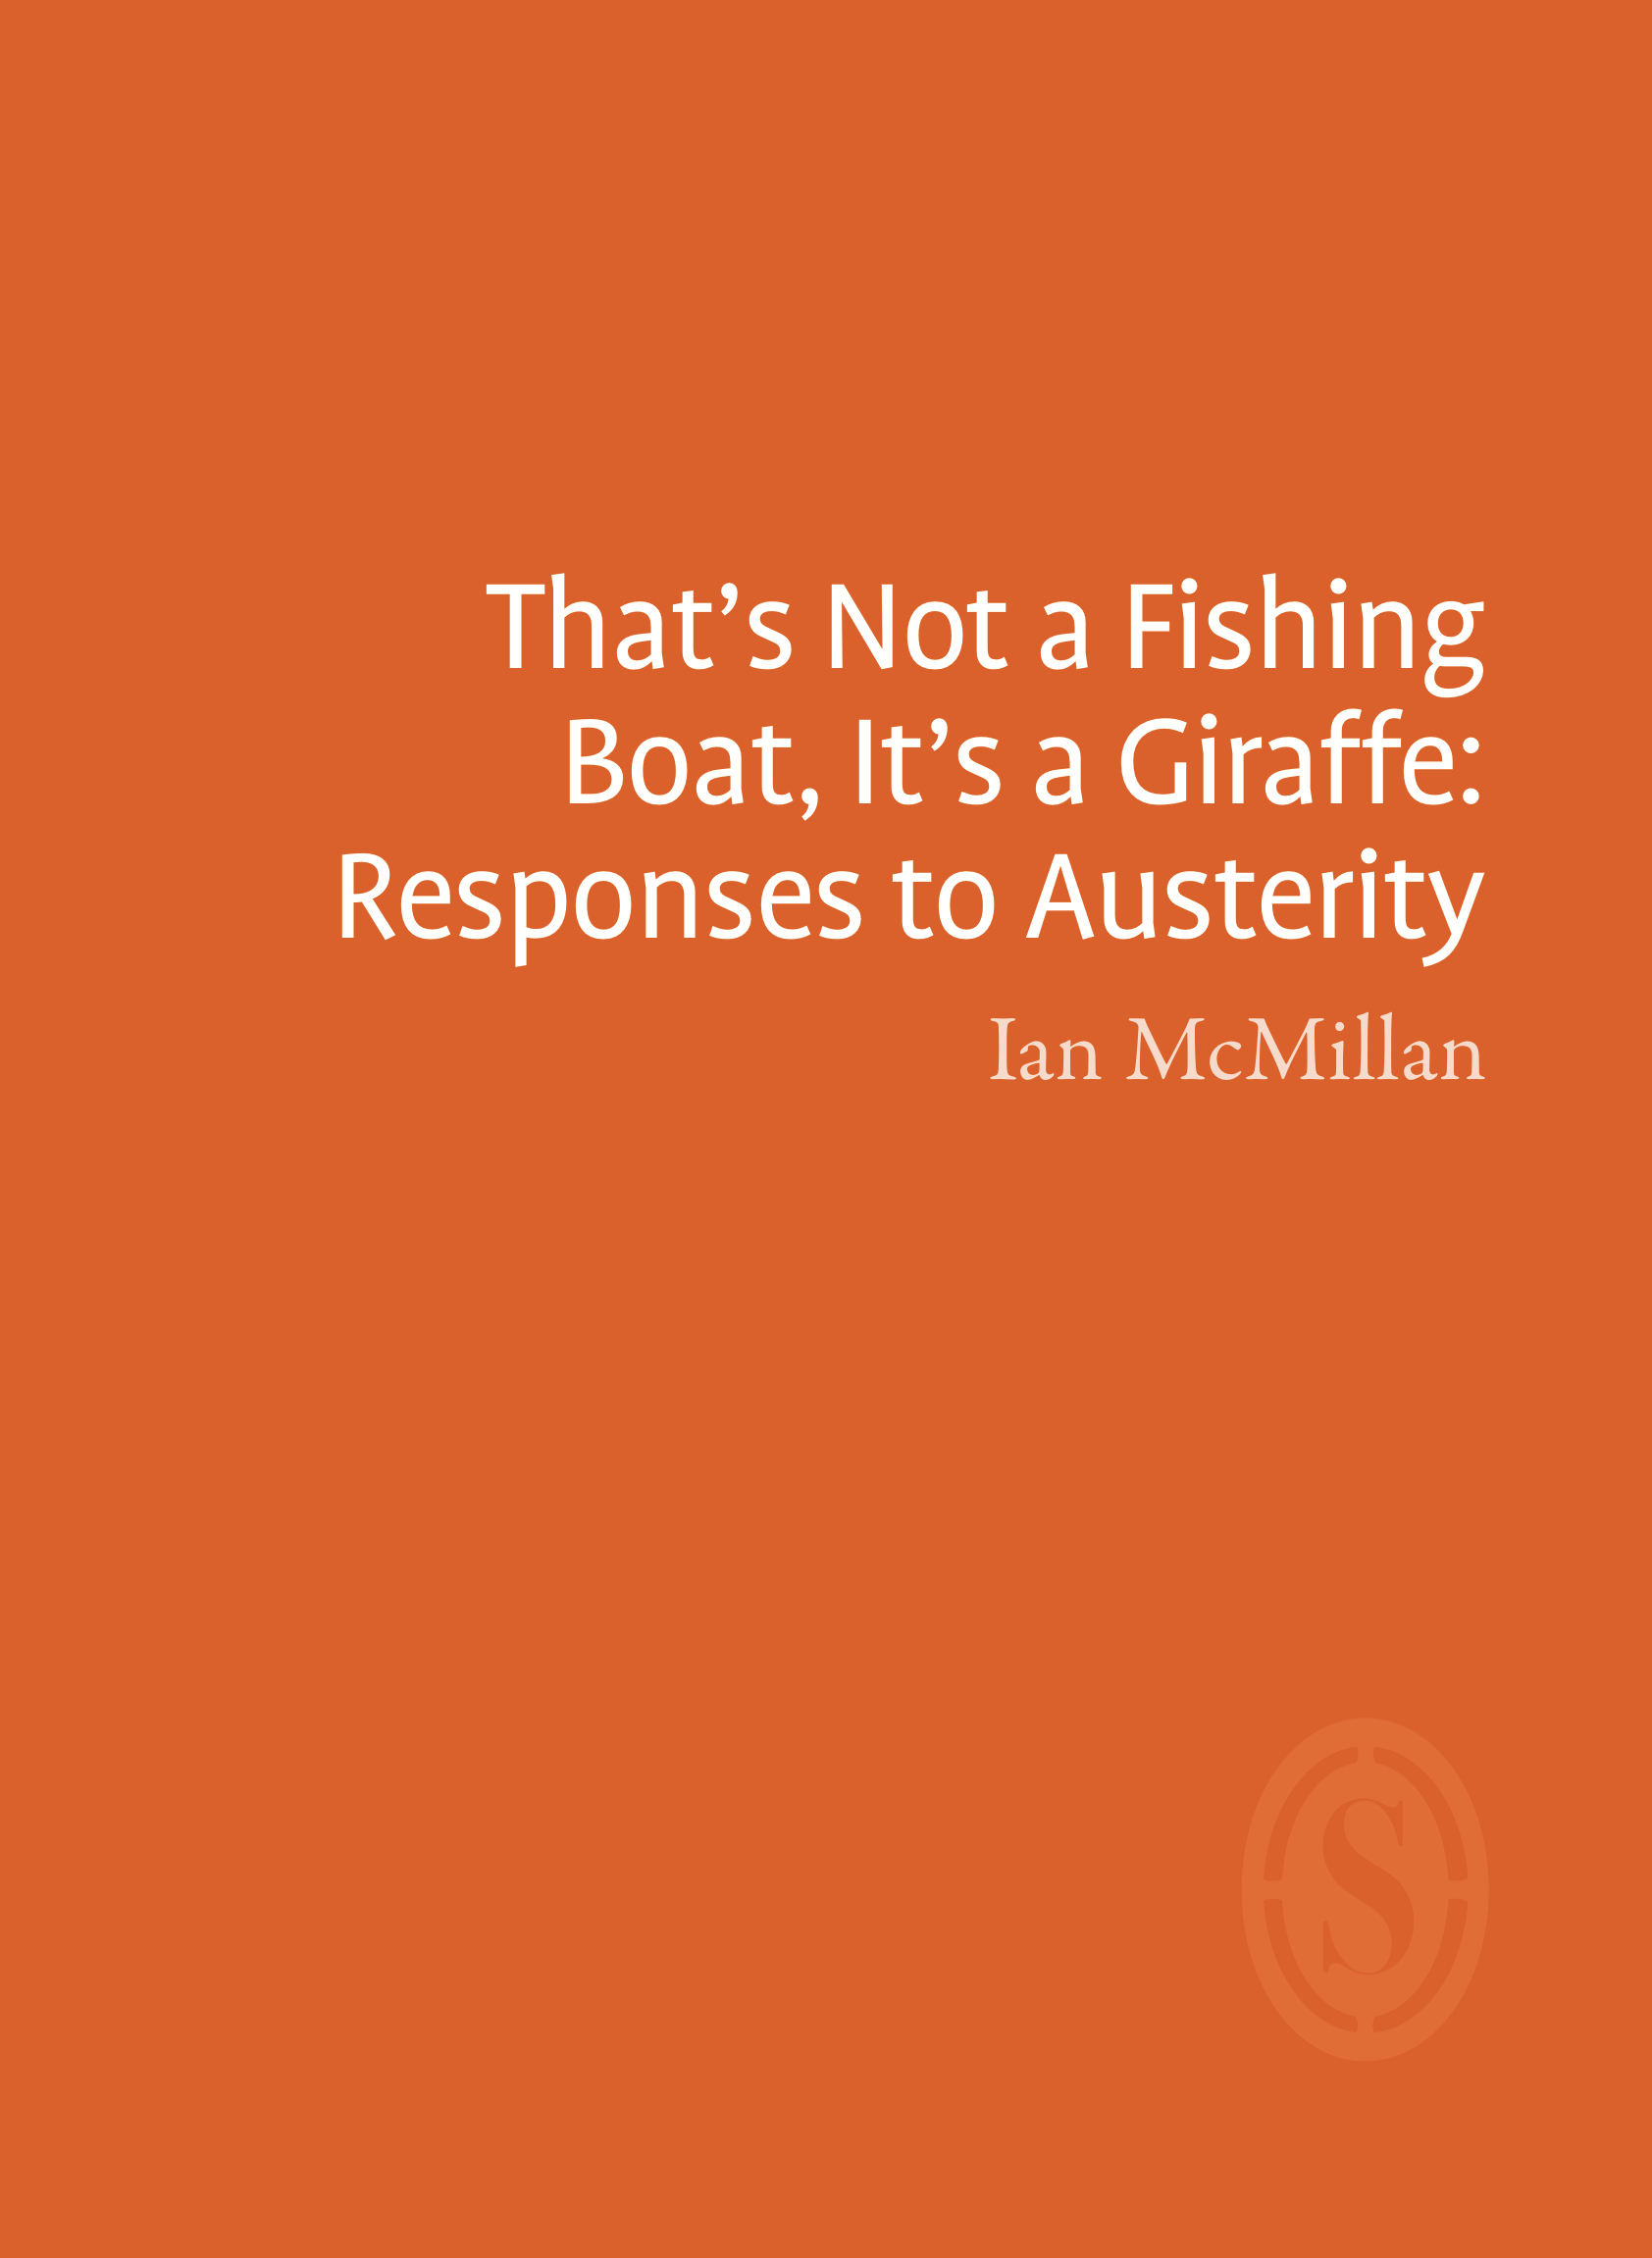 That's Not a Fishing Boat, It's a Giraffe: Responses to Austerity